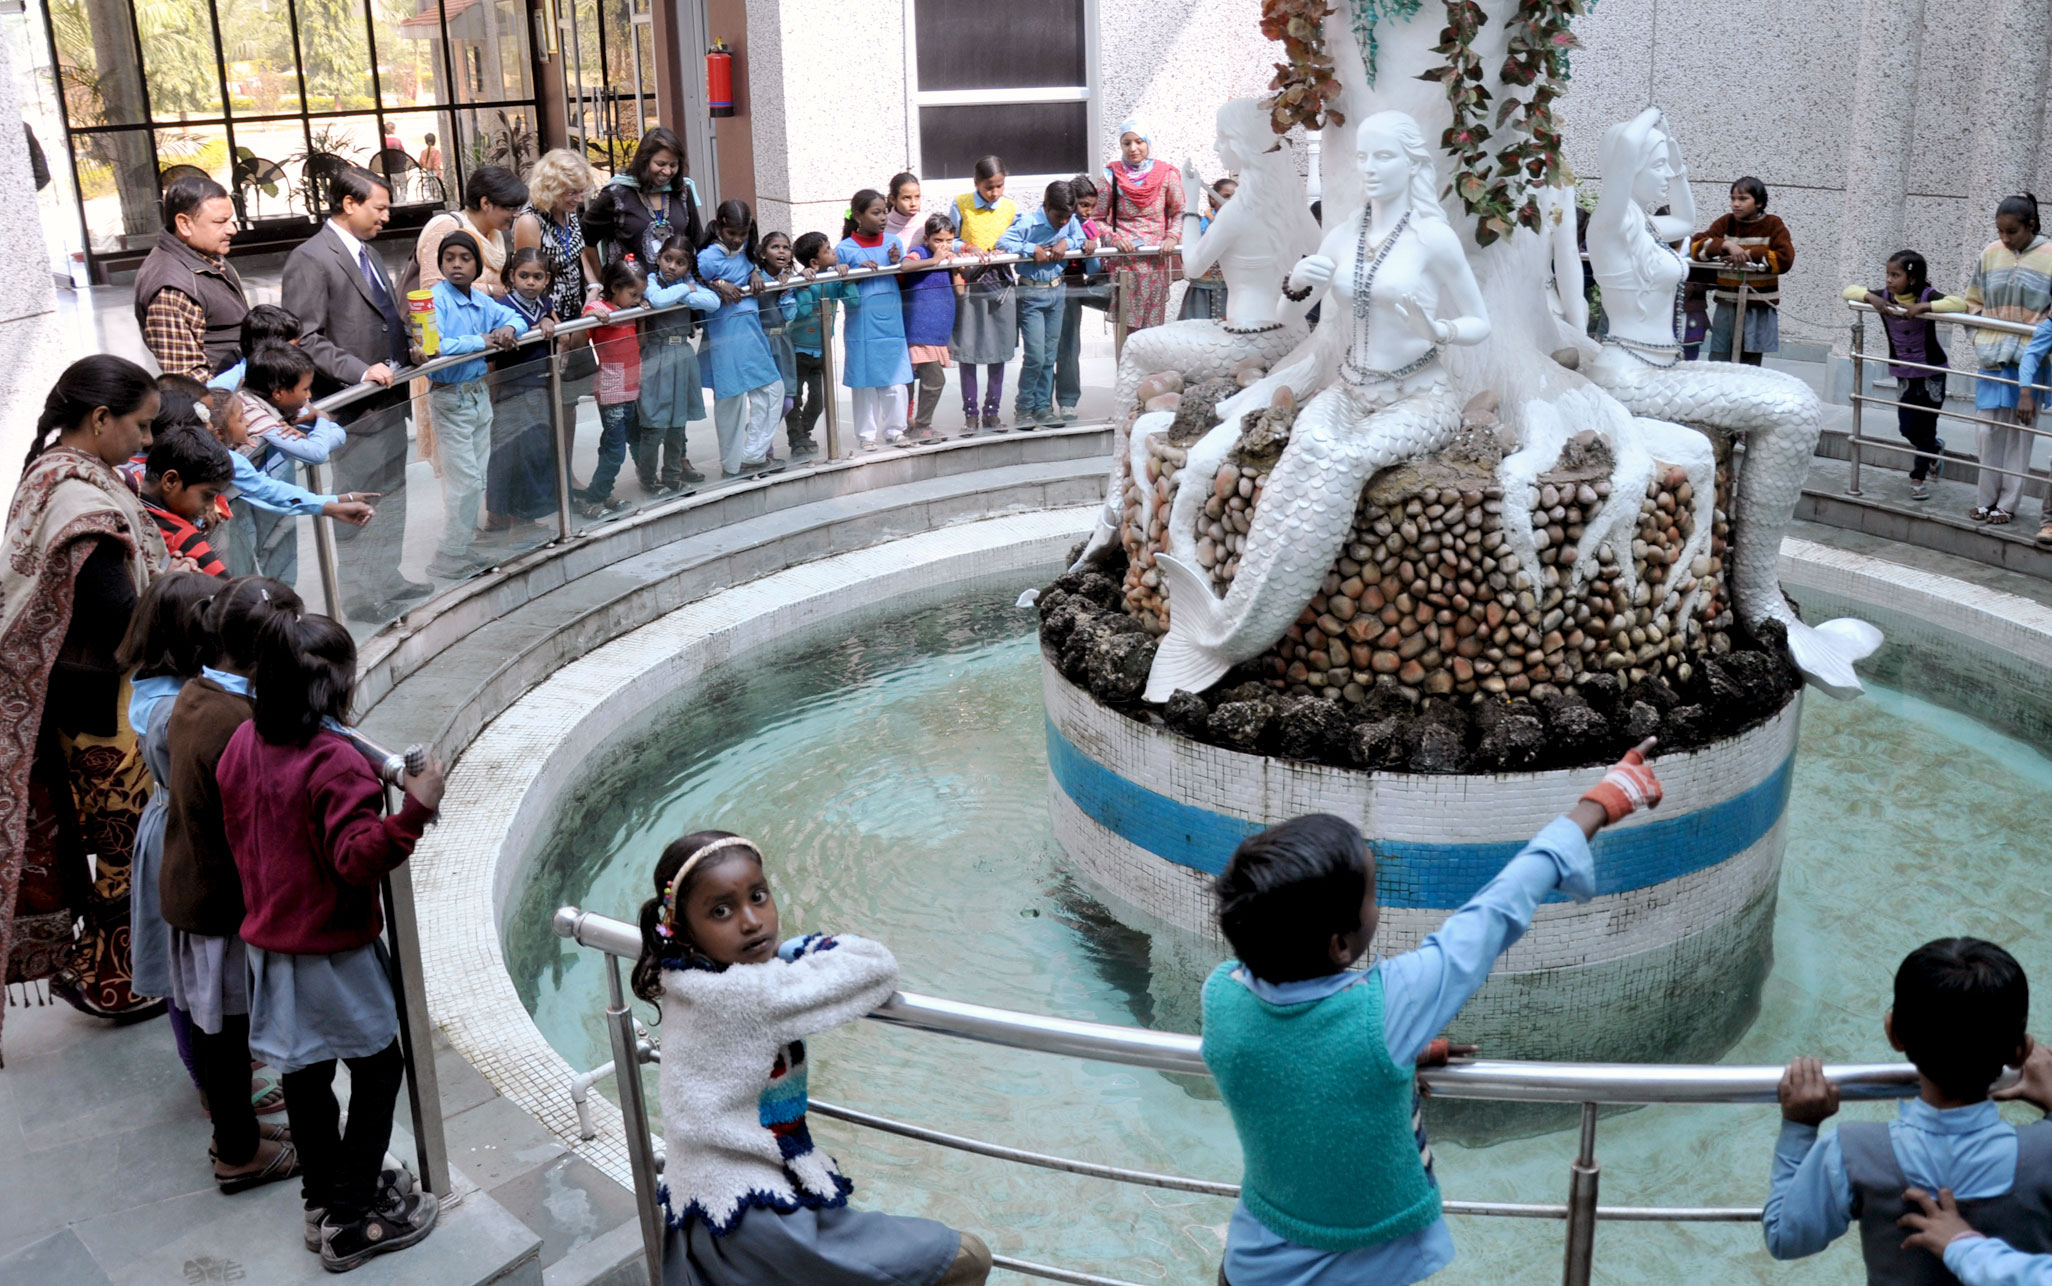 Rural school kids from Lucknow learn about water safety at the Ganga Aquarium.